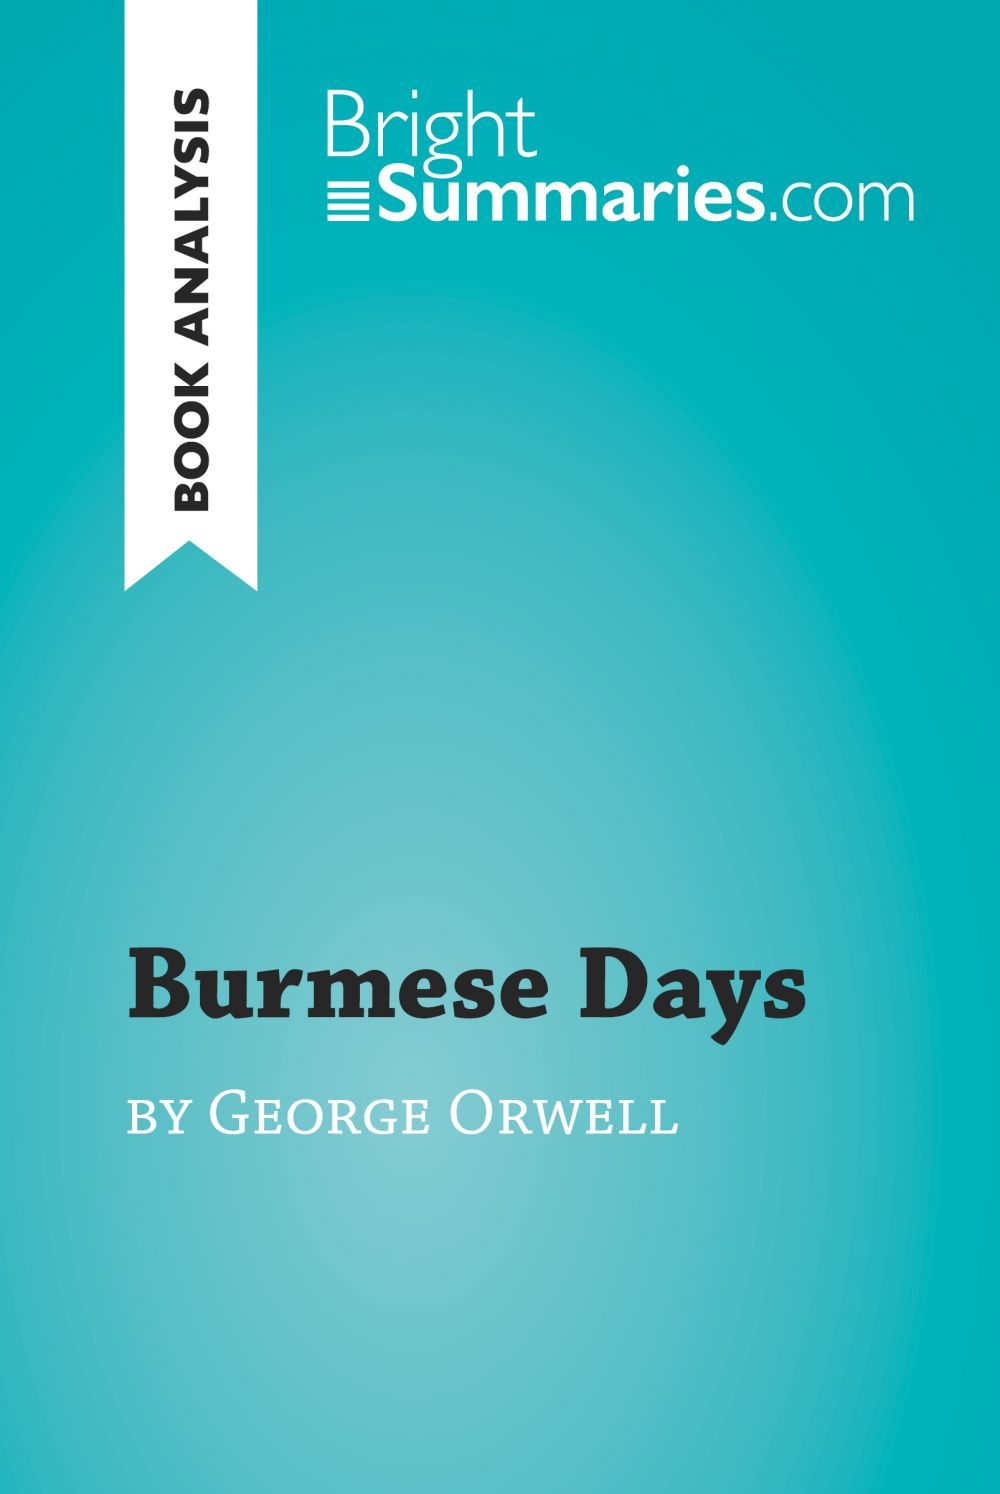 Burmese Days by George Orwell (Book Analysis)